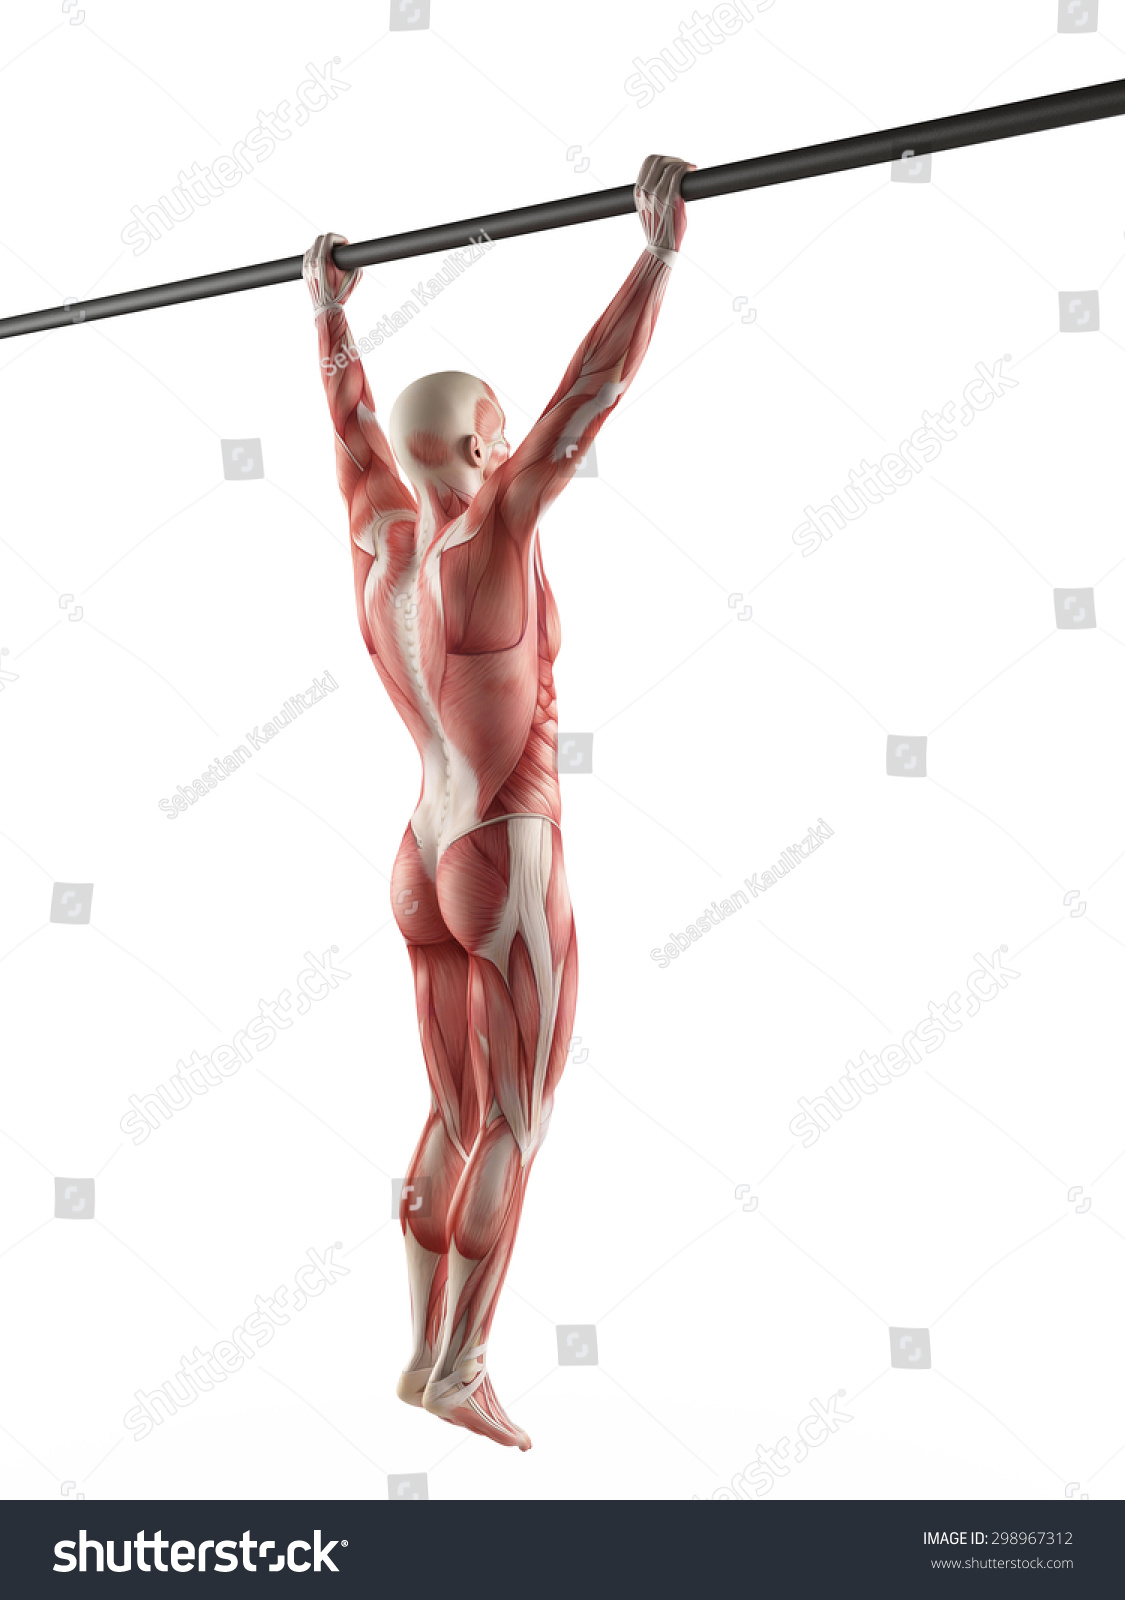 Royalty Free Stock Illustration Of Exercise Illustration Wide Grip